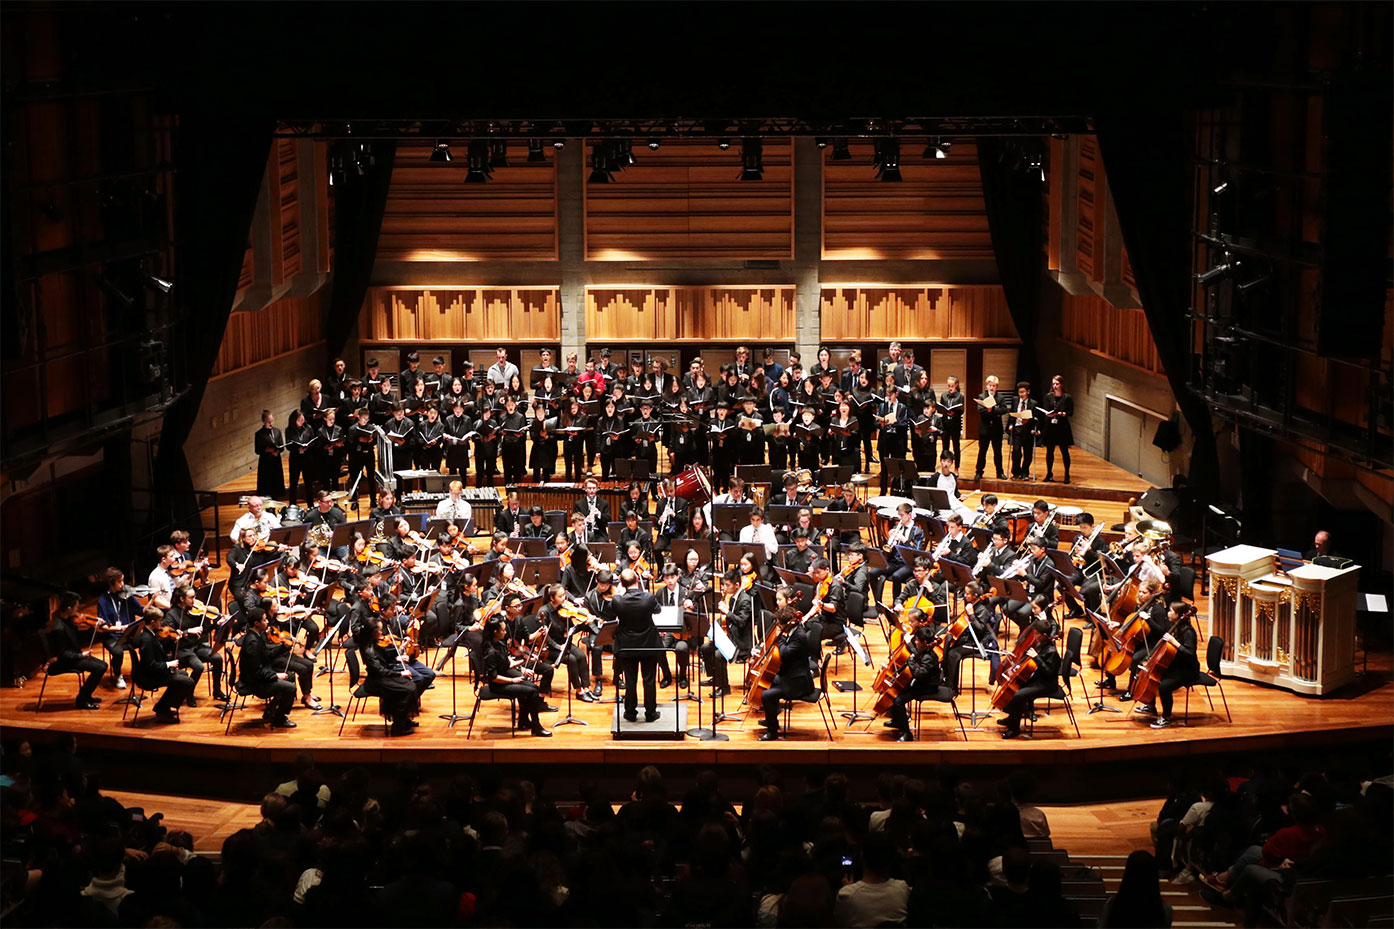 Olympiad Gala Music Concert at Queen Elizabeth Hall